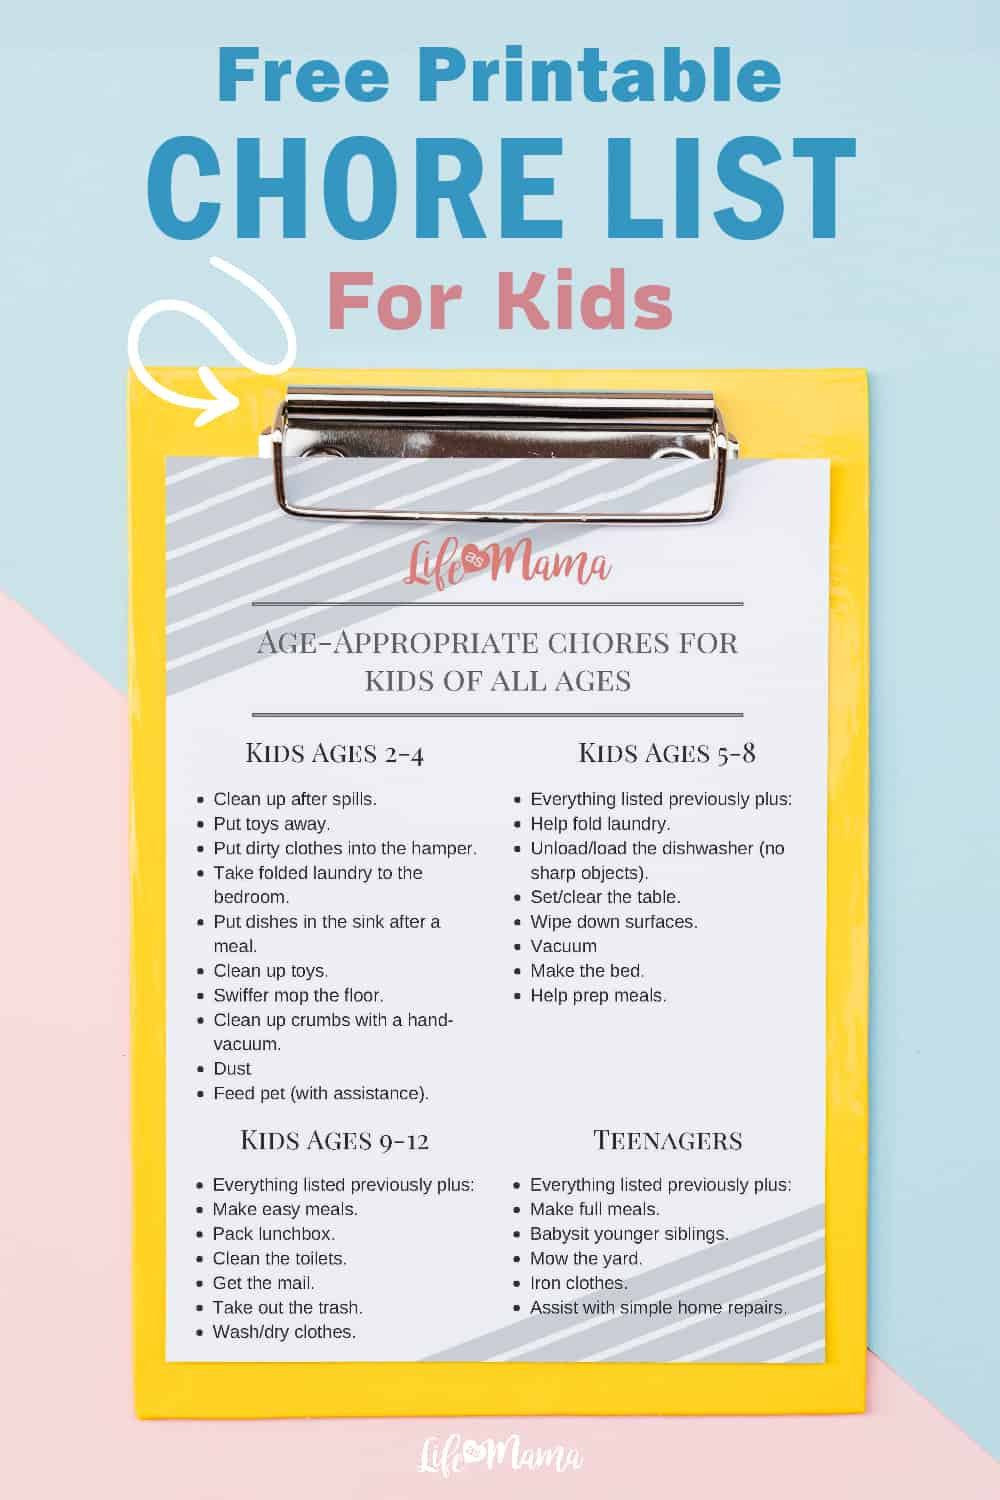 age-appropriate chore list free printable